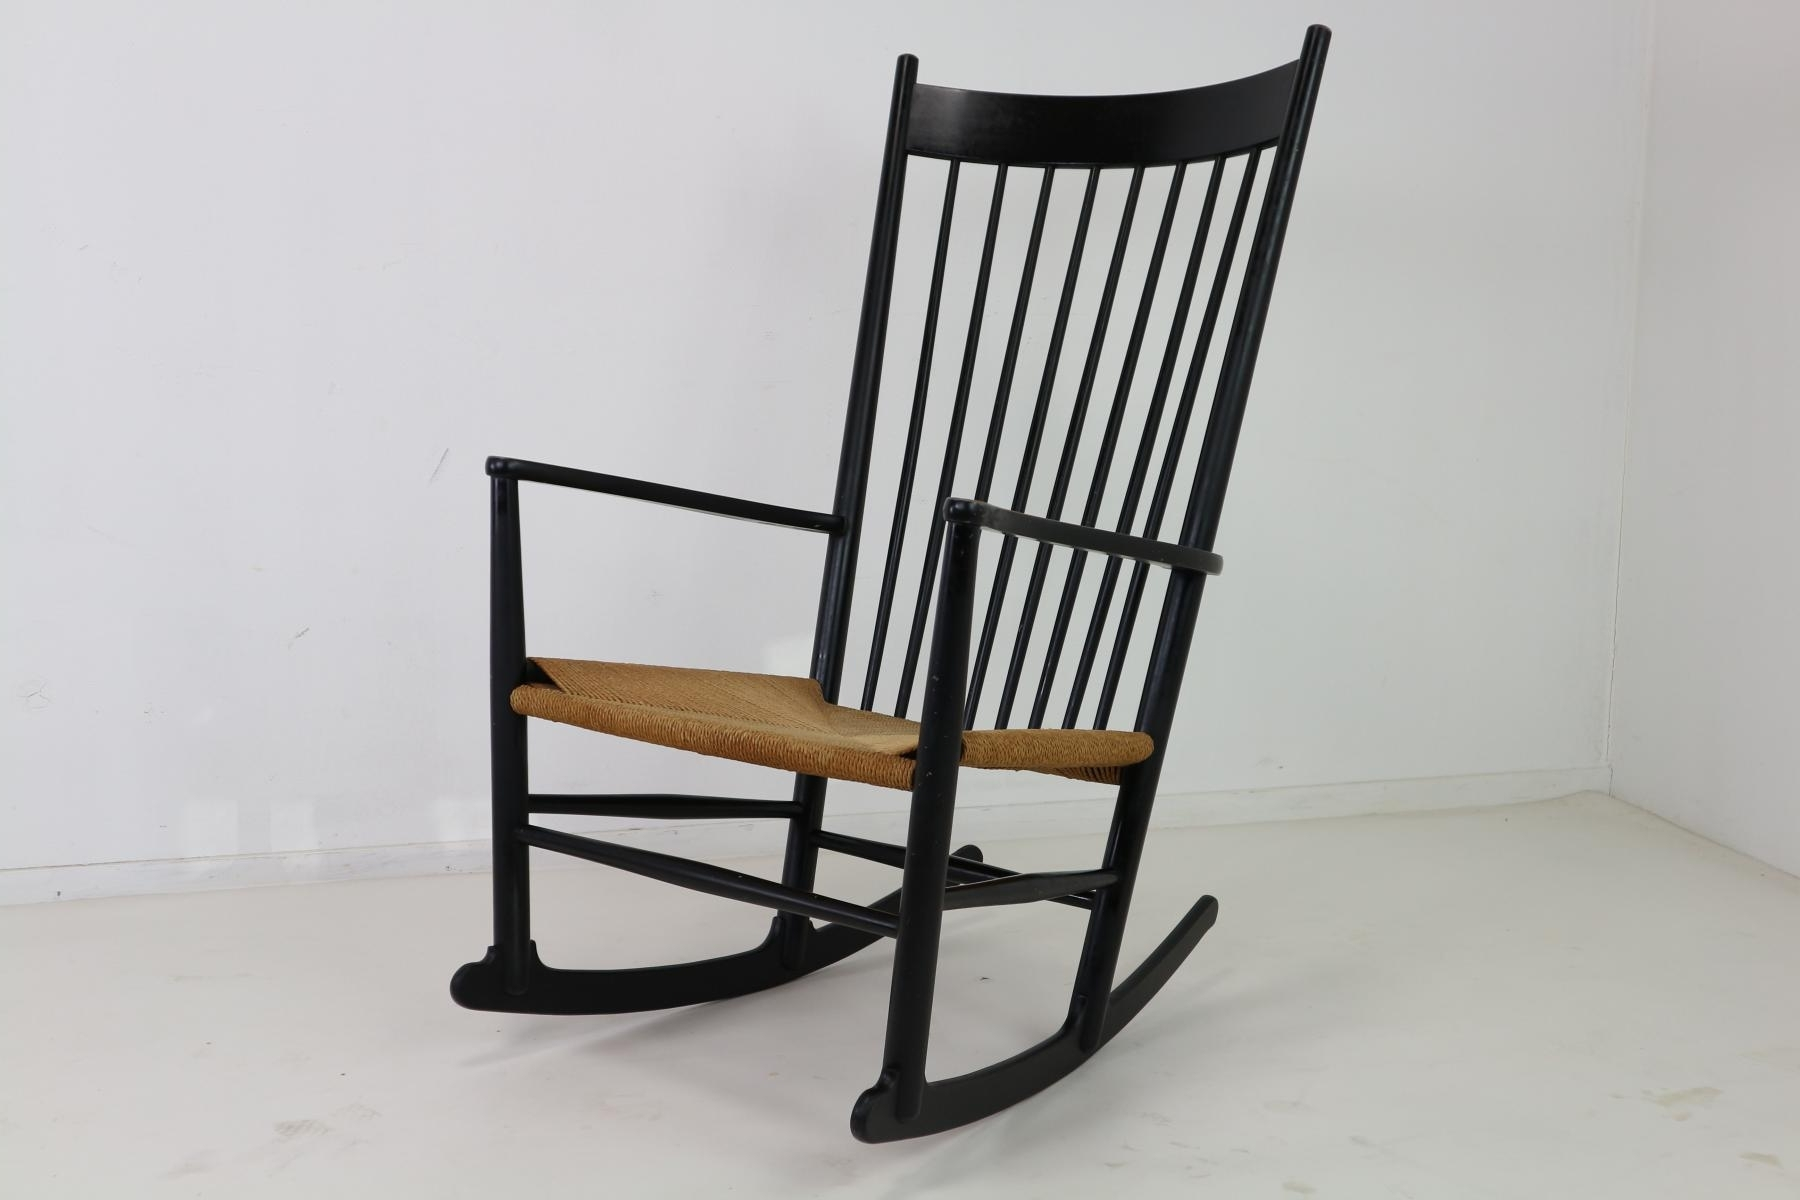 Fold Up Rocking Chair Vintage Outdoor Rocking Chair Black Within Vintage Outdoor Rocking Chairs (View 7 of 15)